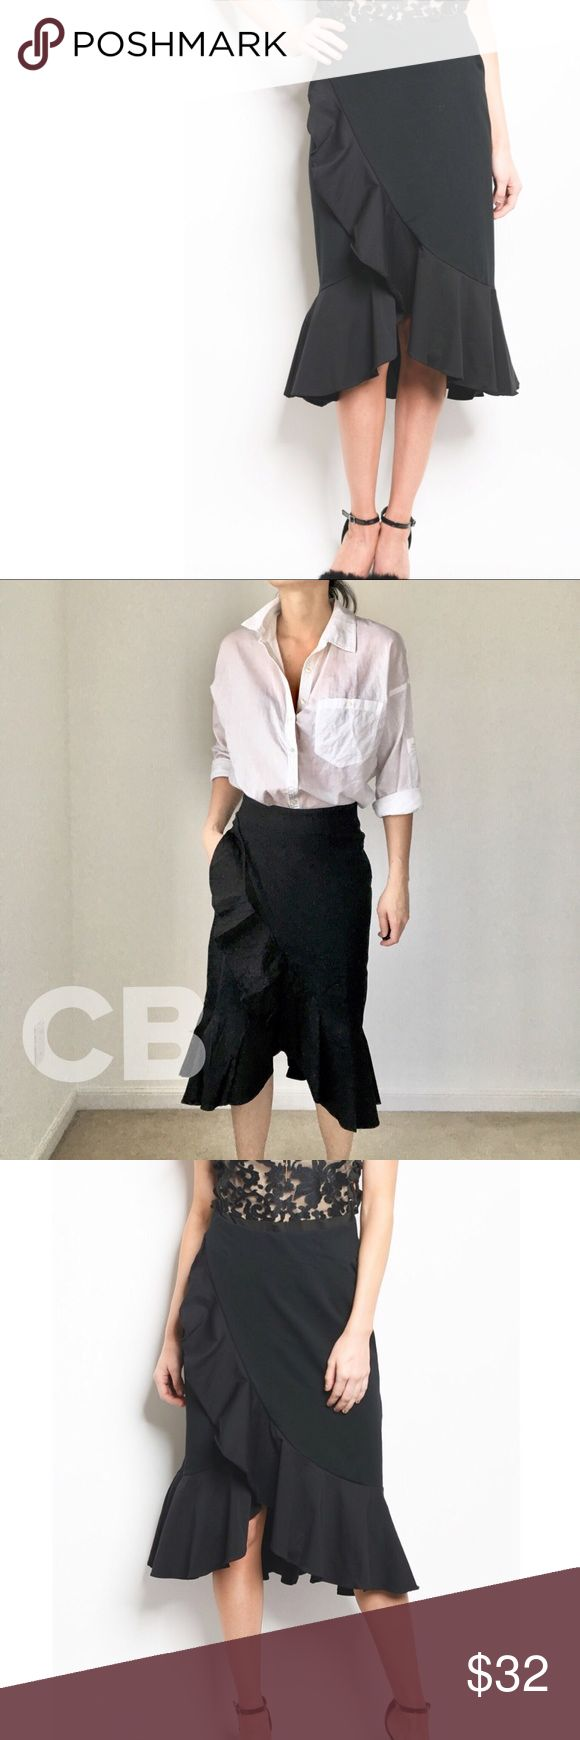 """Maje maje wrap effect ruffled midi skirt Ruffle skirt with elastane waist. Style it up with the work shirt. Yes! Or a T-shirt. Ruffle cascade from top mid to the hem line. Cotton spandex fabric. I'm wearing size s for cover shots. Size S length 31"""" waist 26"""". Size M length 31, waist 27"""". #nordstrom CHICBOMB Skirts Midi"""